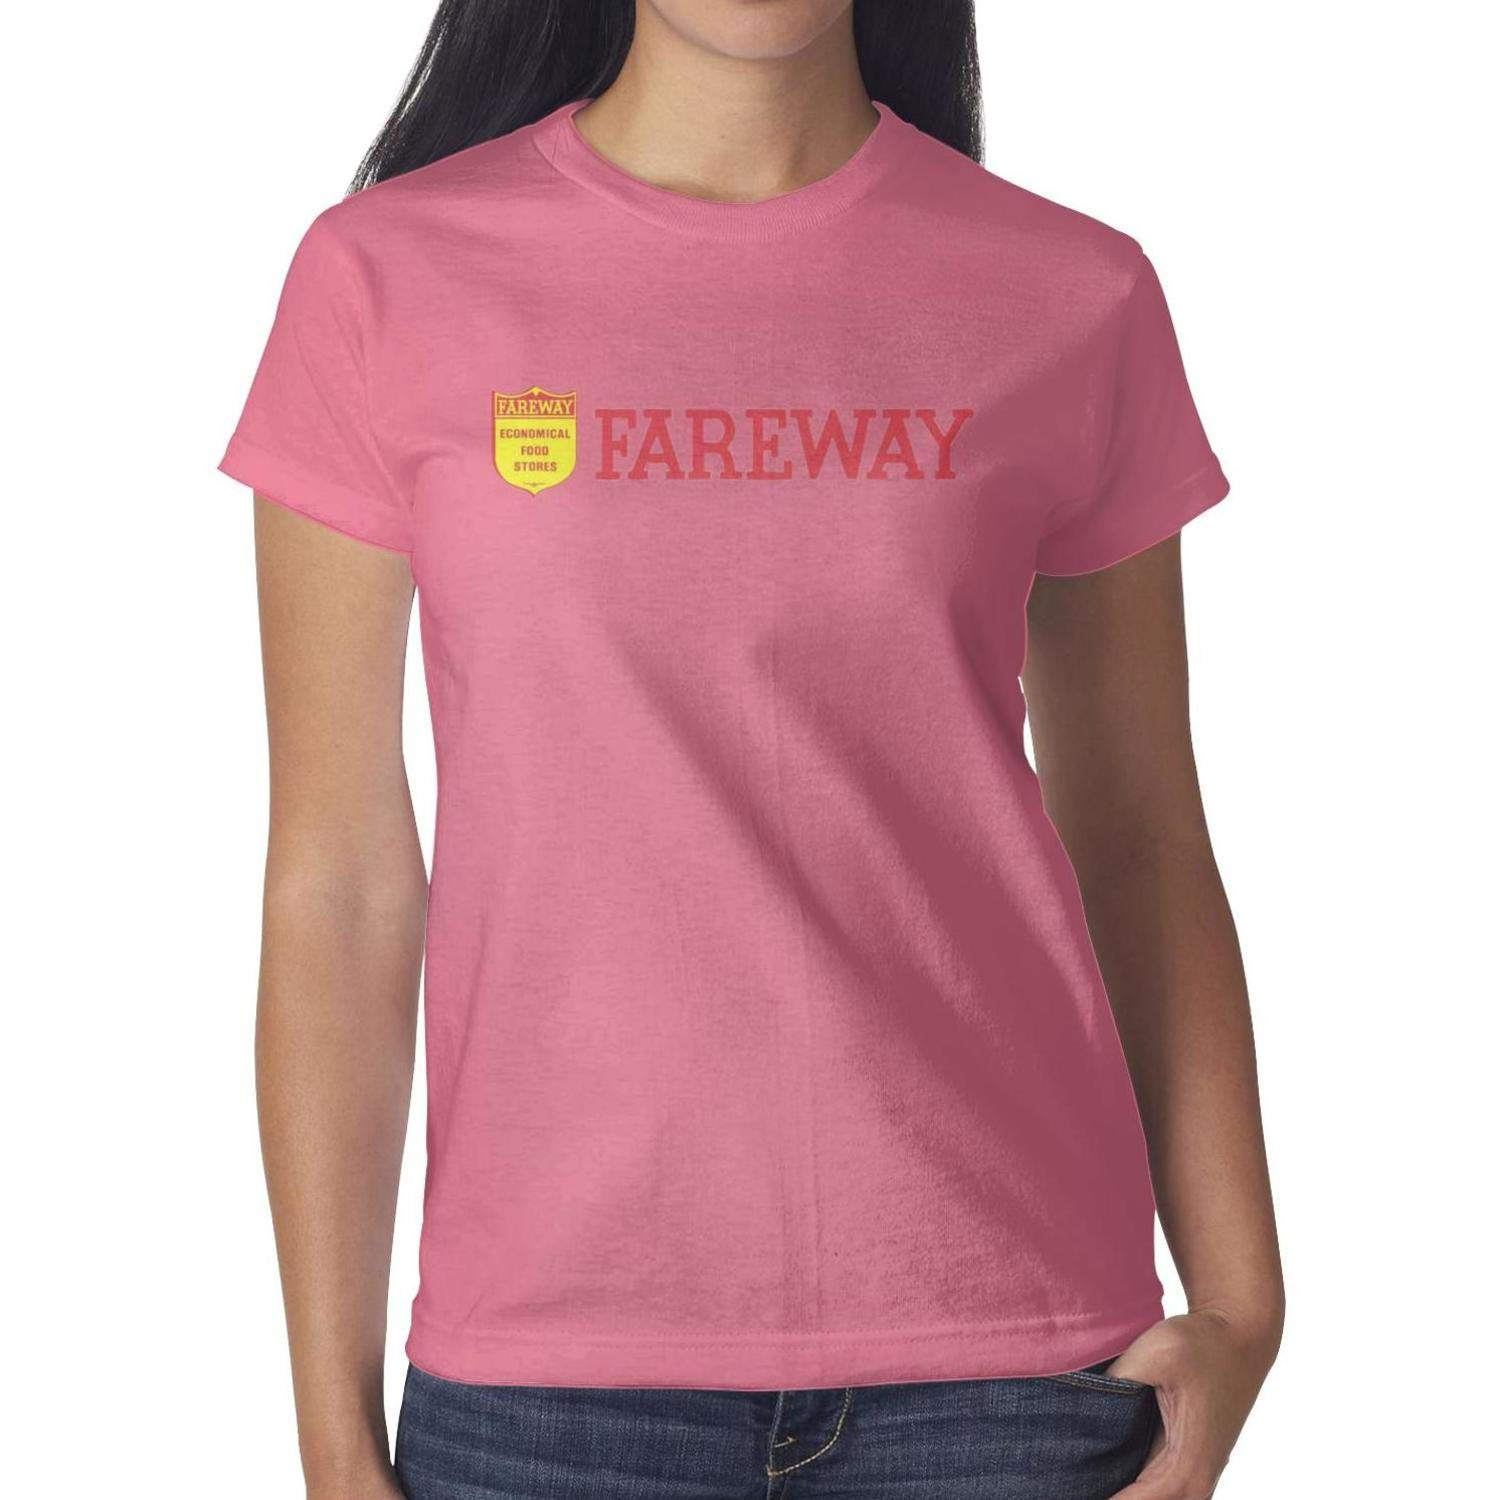 Fareway Celebrates New Store Opening in Des Moines Womens Short Sleeve T Shirt Cotton Simple Shirt Sports Summer Soft and Comfortable Round Neck Tops by ookandua